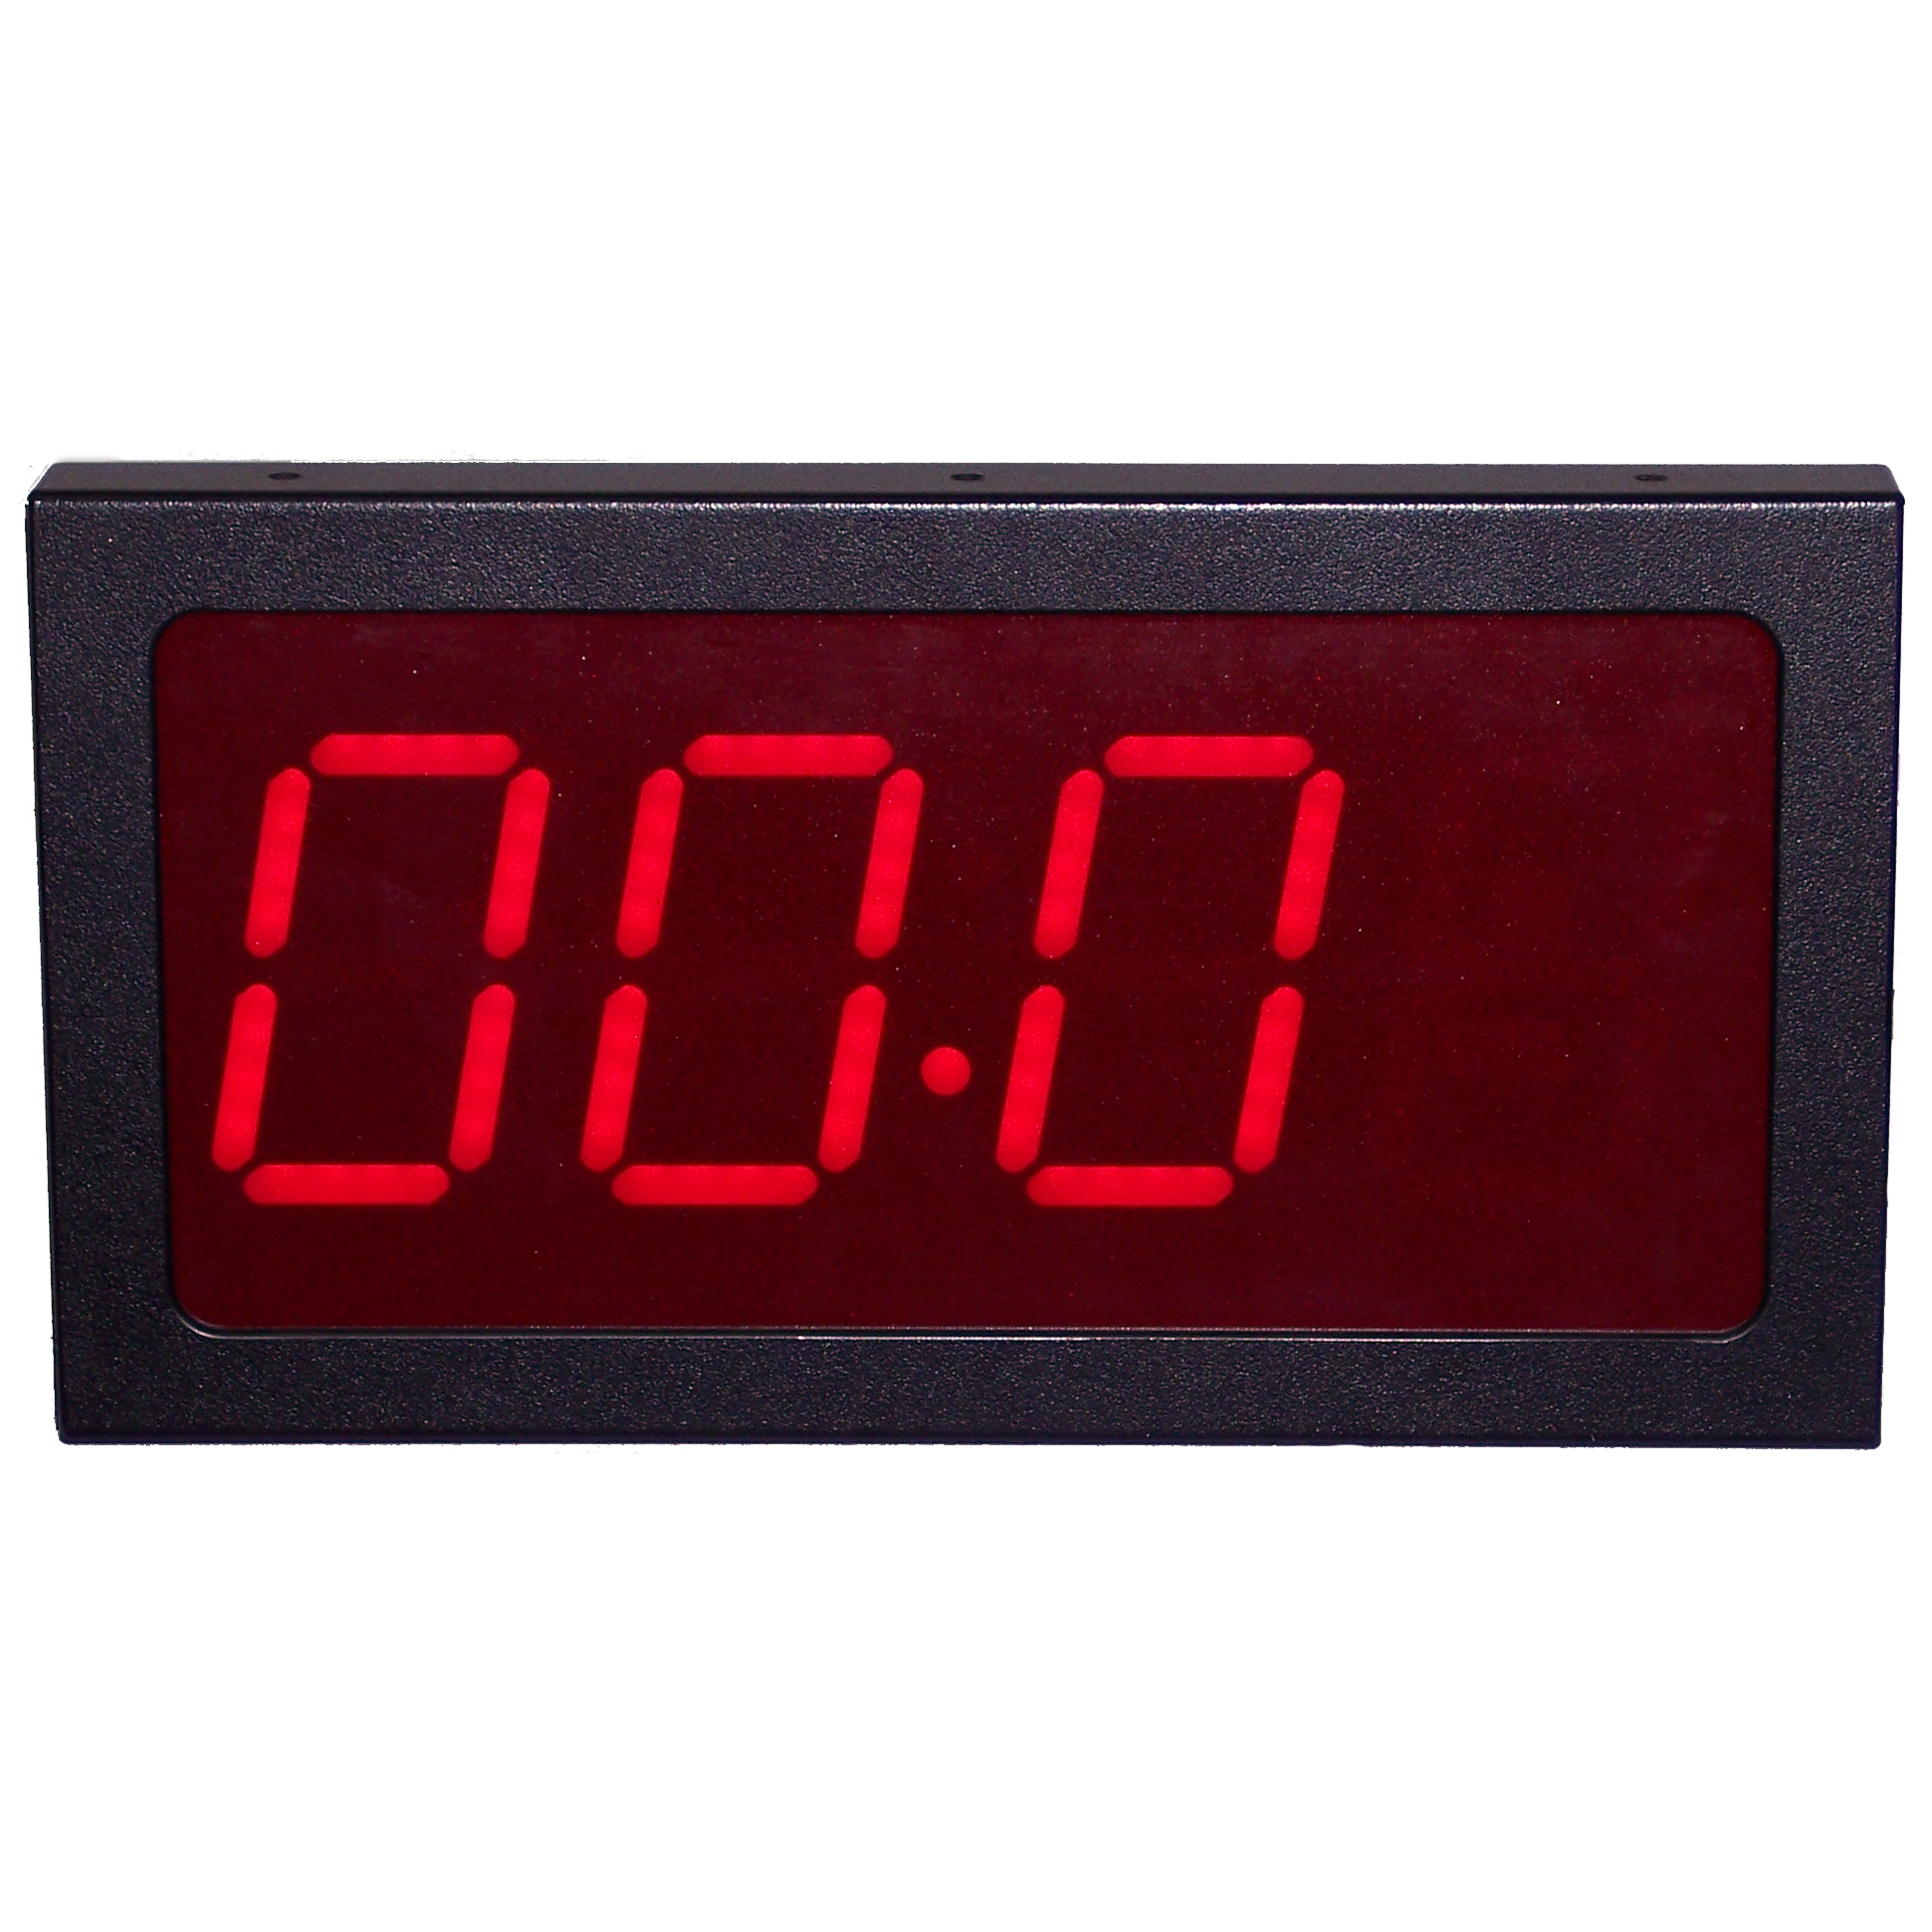 (TI-2031)-Daktronics-Locker-Room-Clock